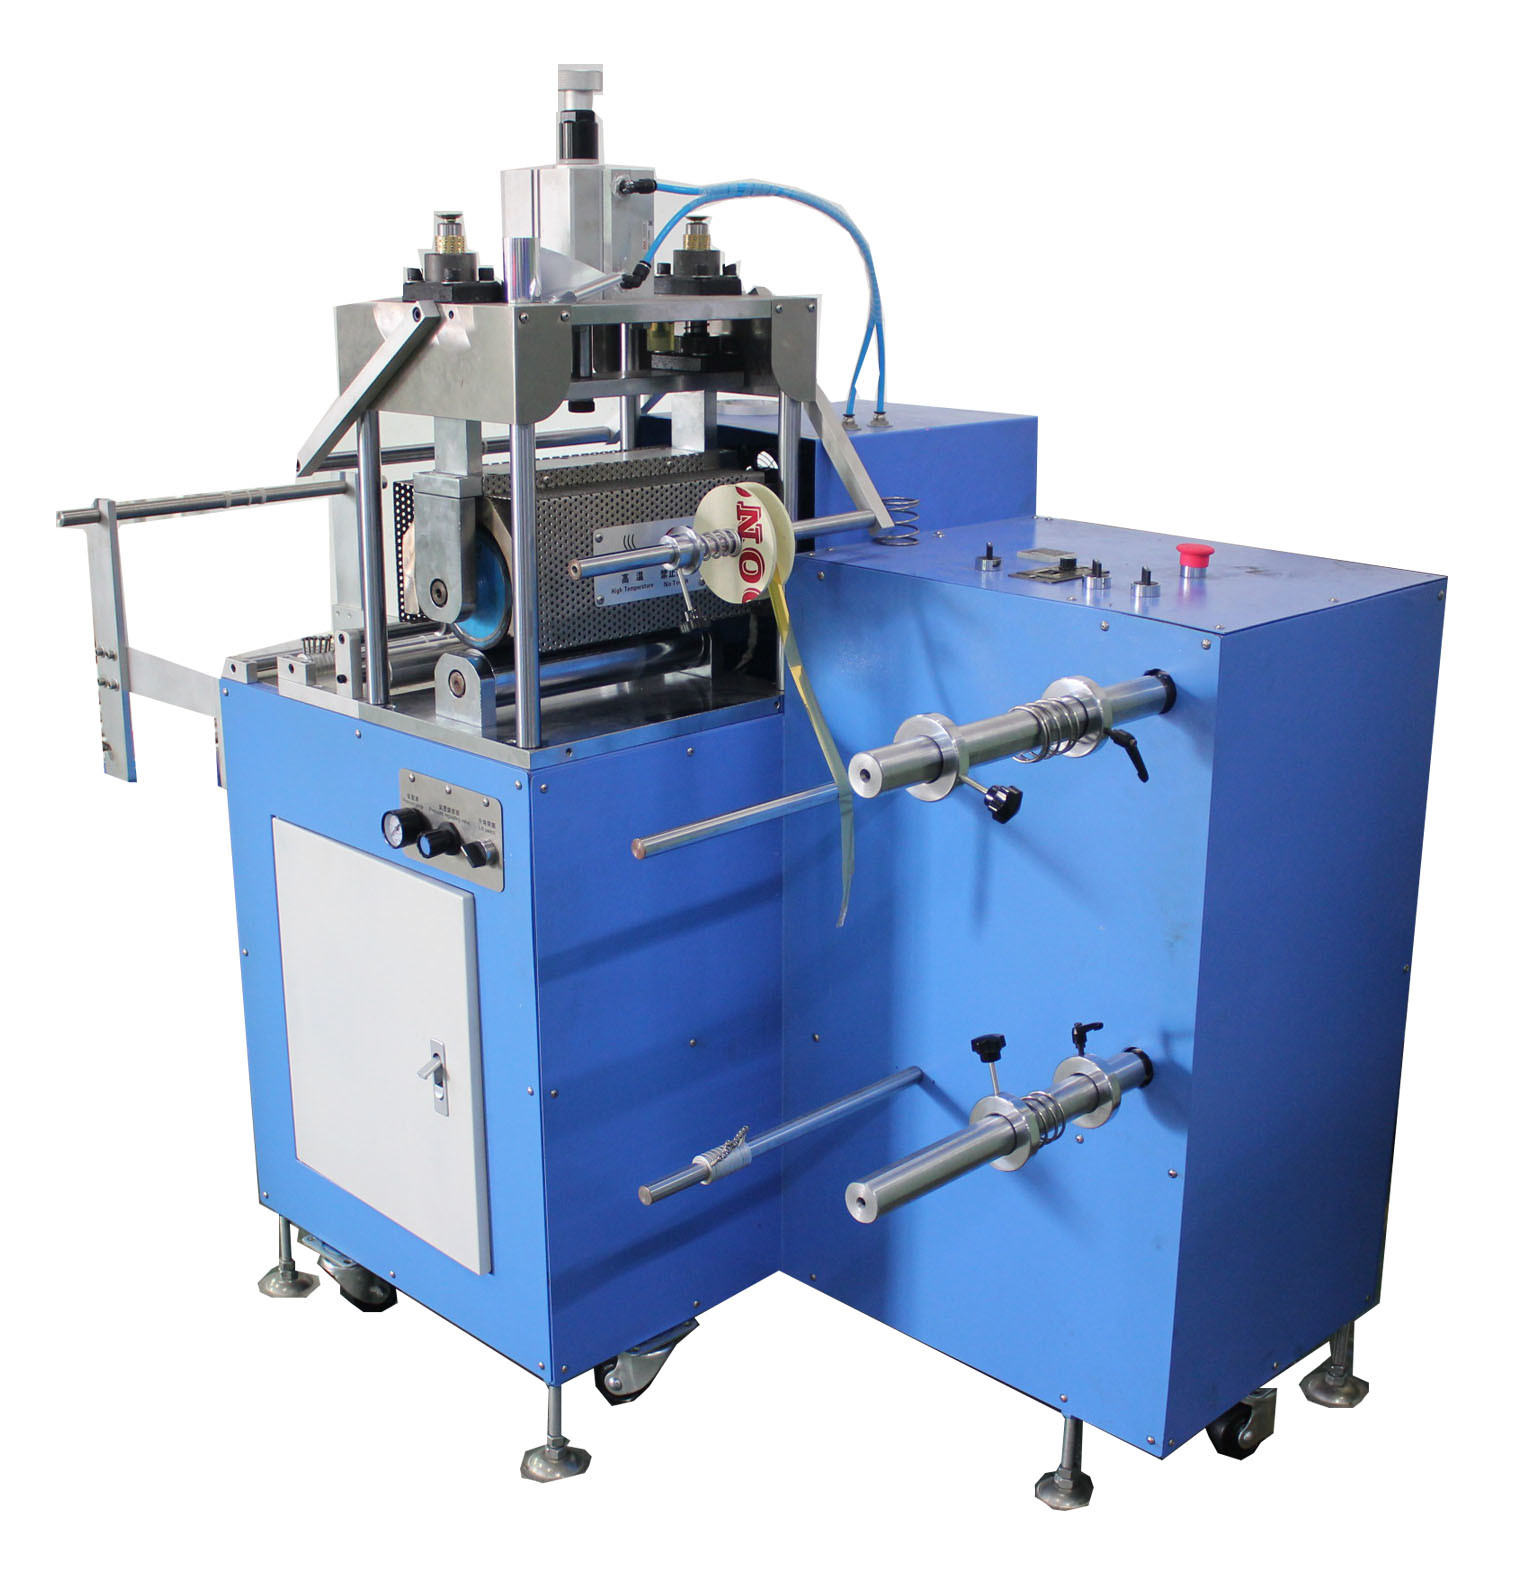 Gift Ribbons Hot stamping Machine mei hege Efficiency Dps-3000s-F